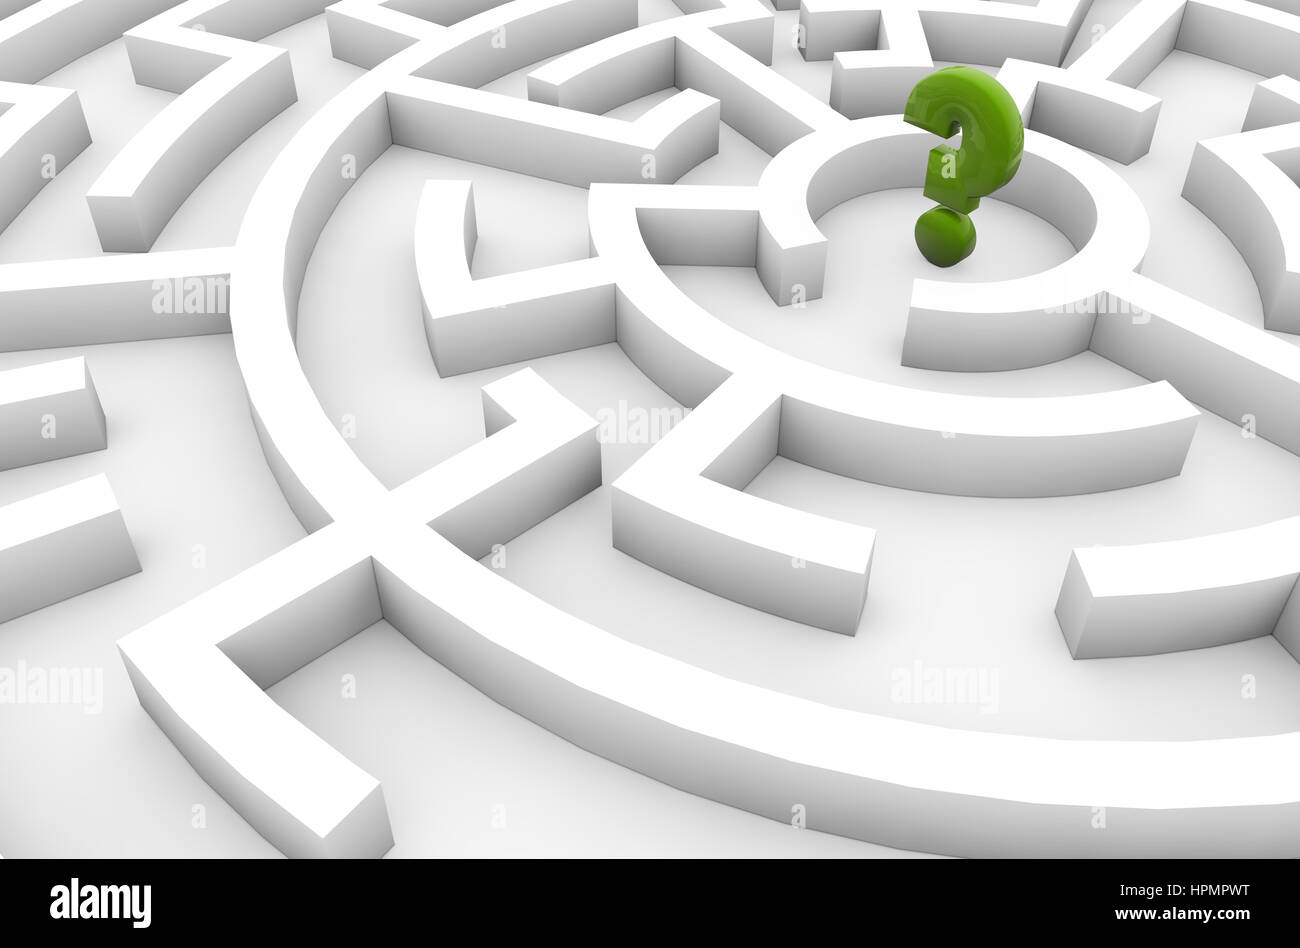 doubts concept: question mark in the middle of a maze - Stock Image